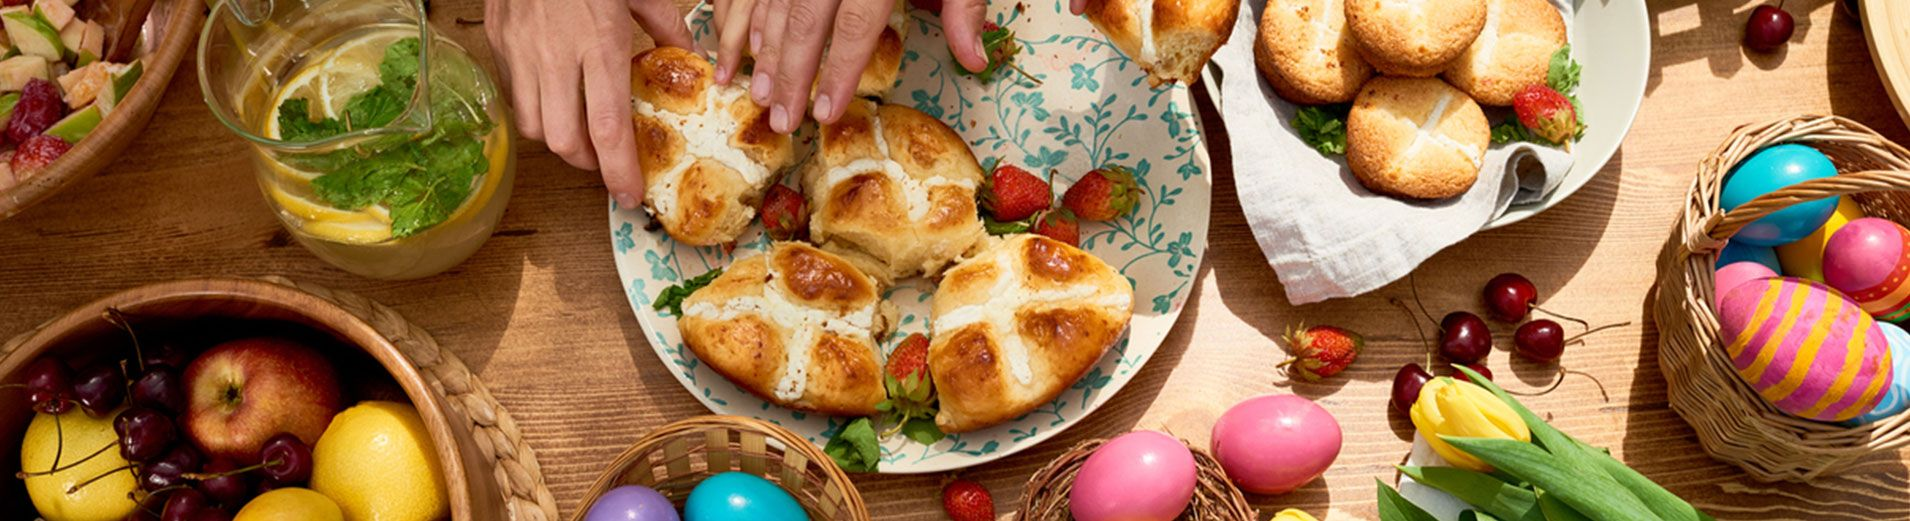 Table full of food and easter eggings with hands taking bread